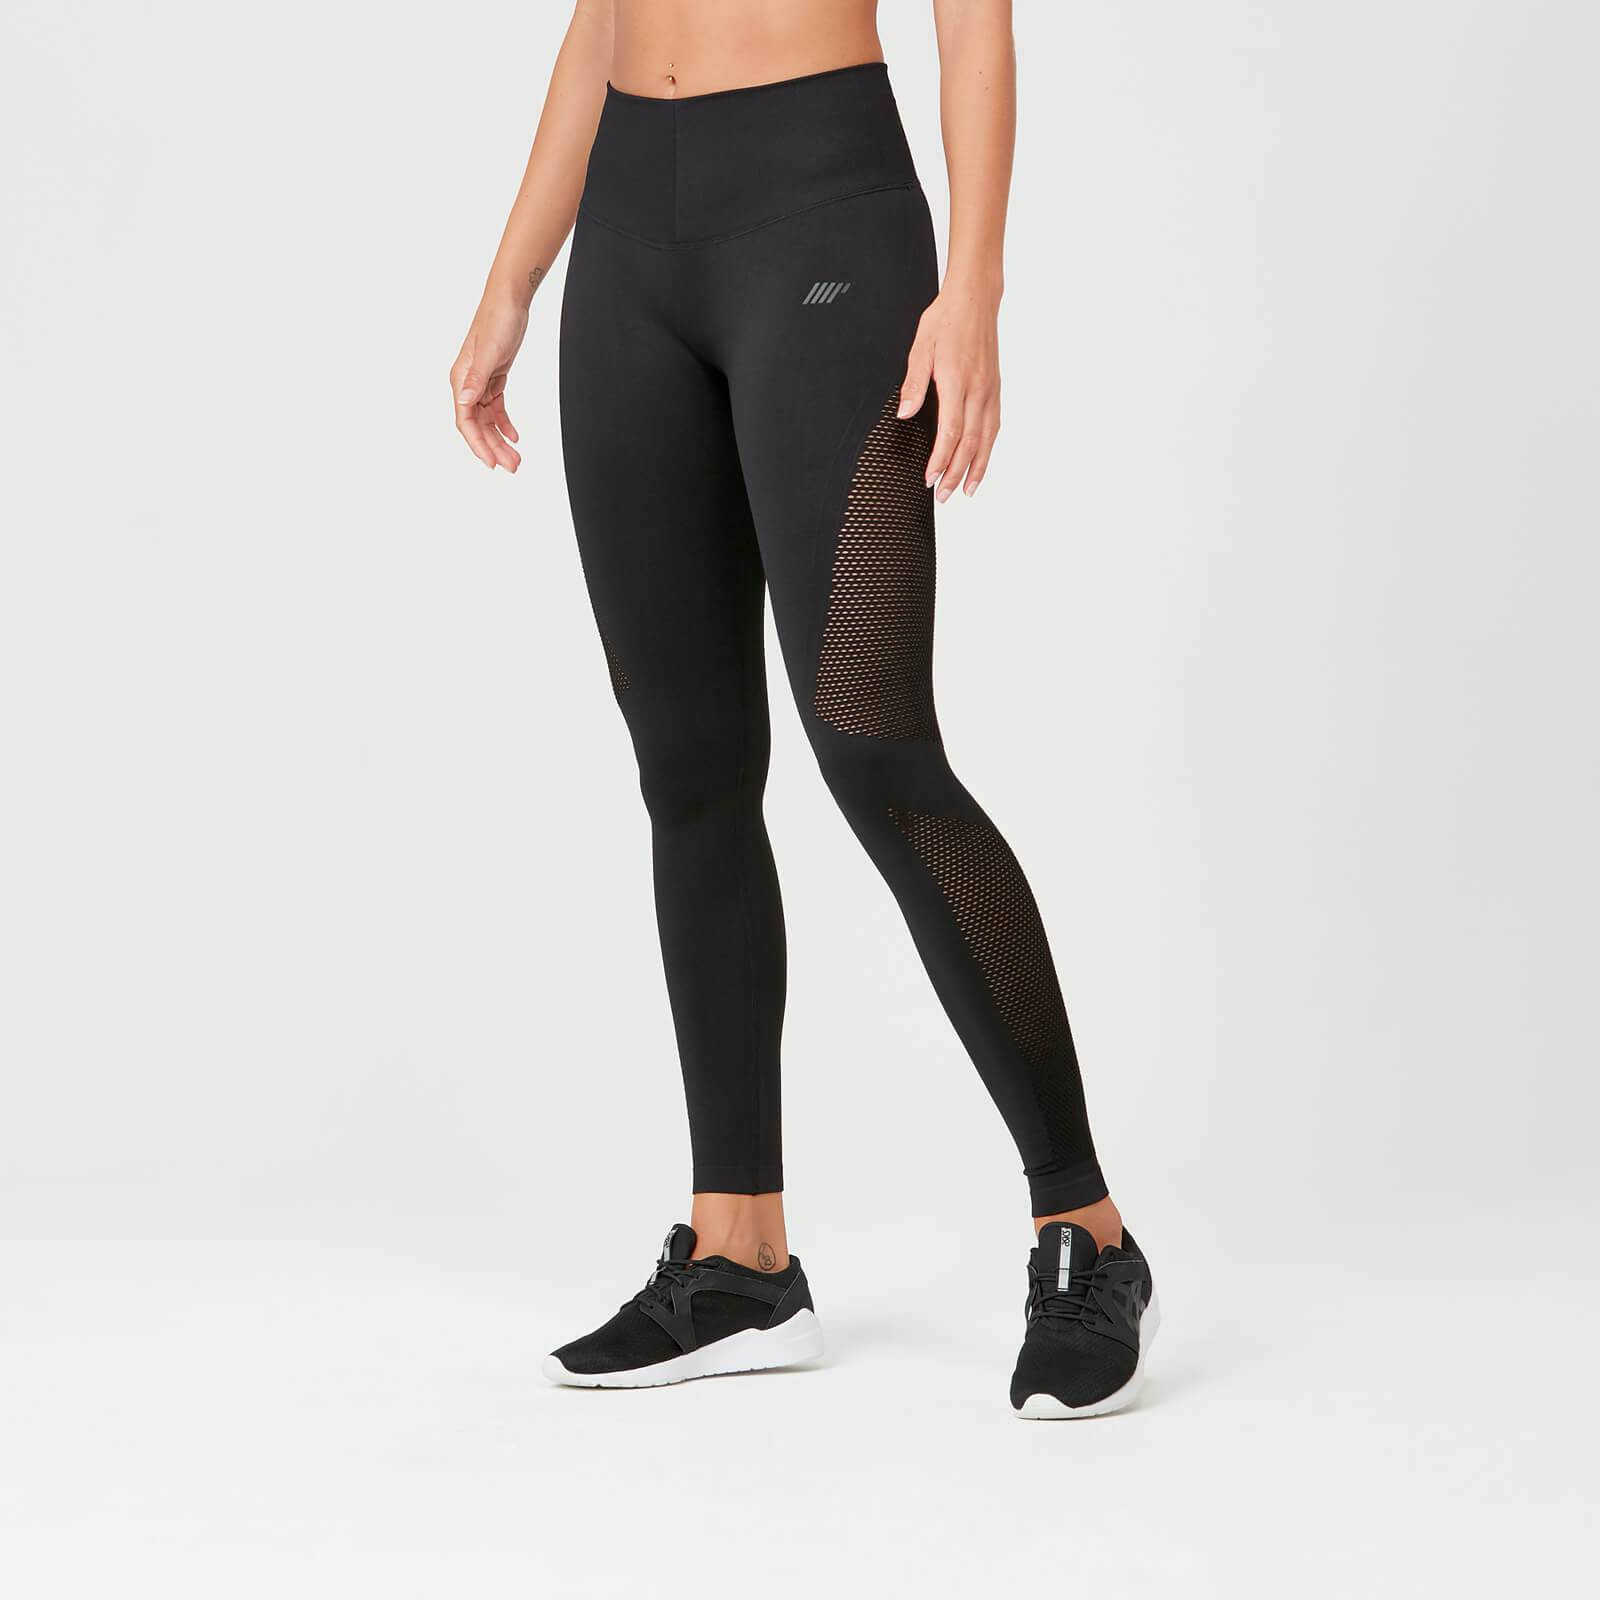 Myprotein Leggings Shape Seamless - M